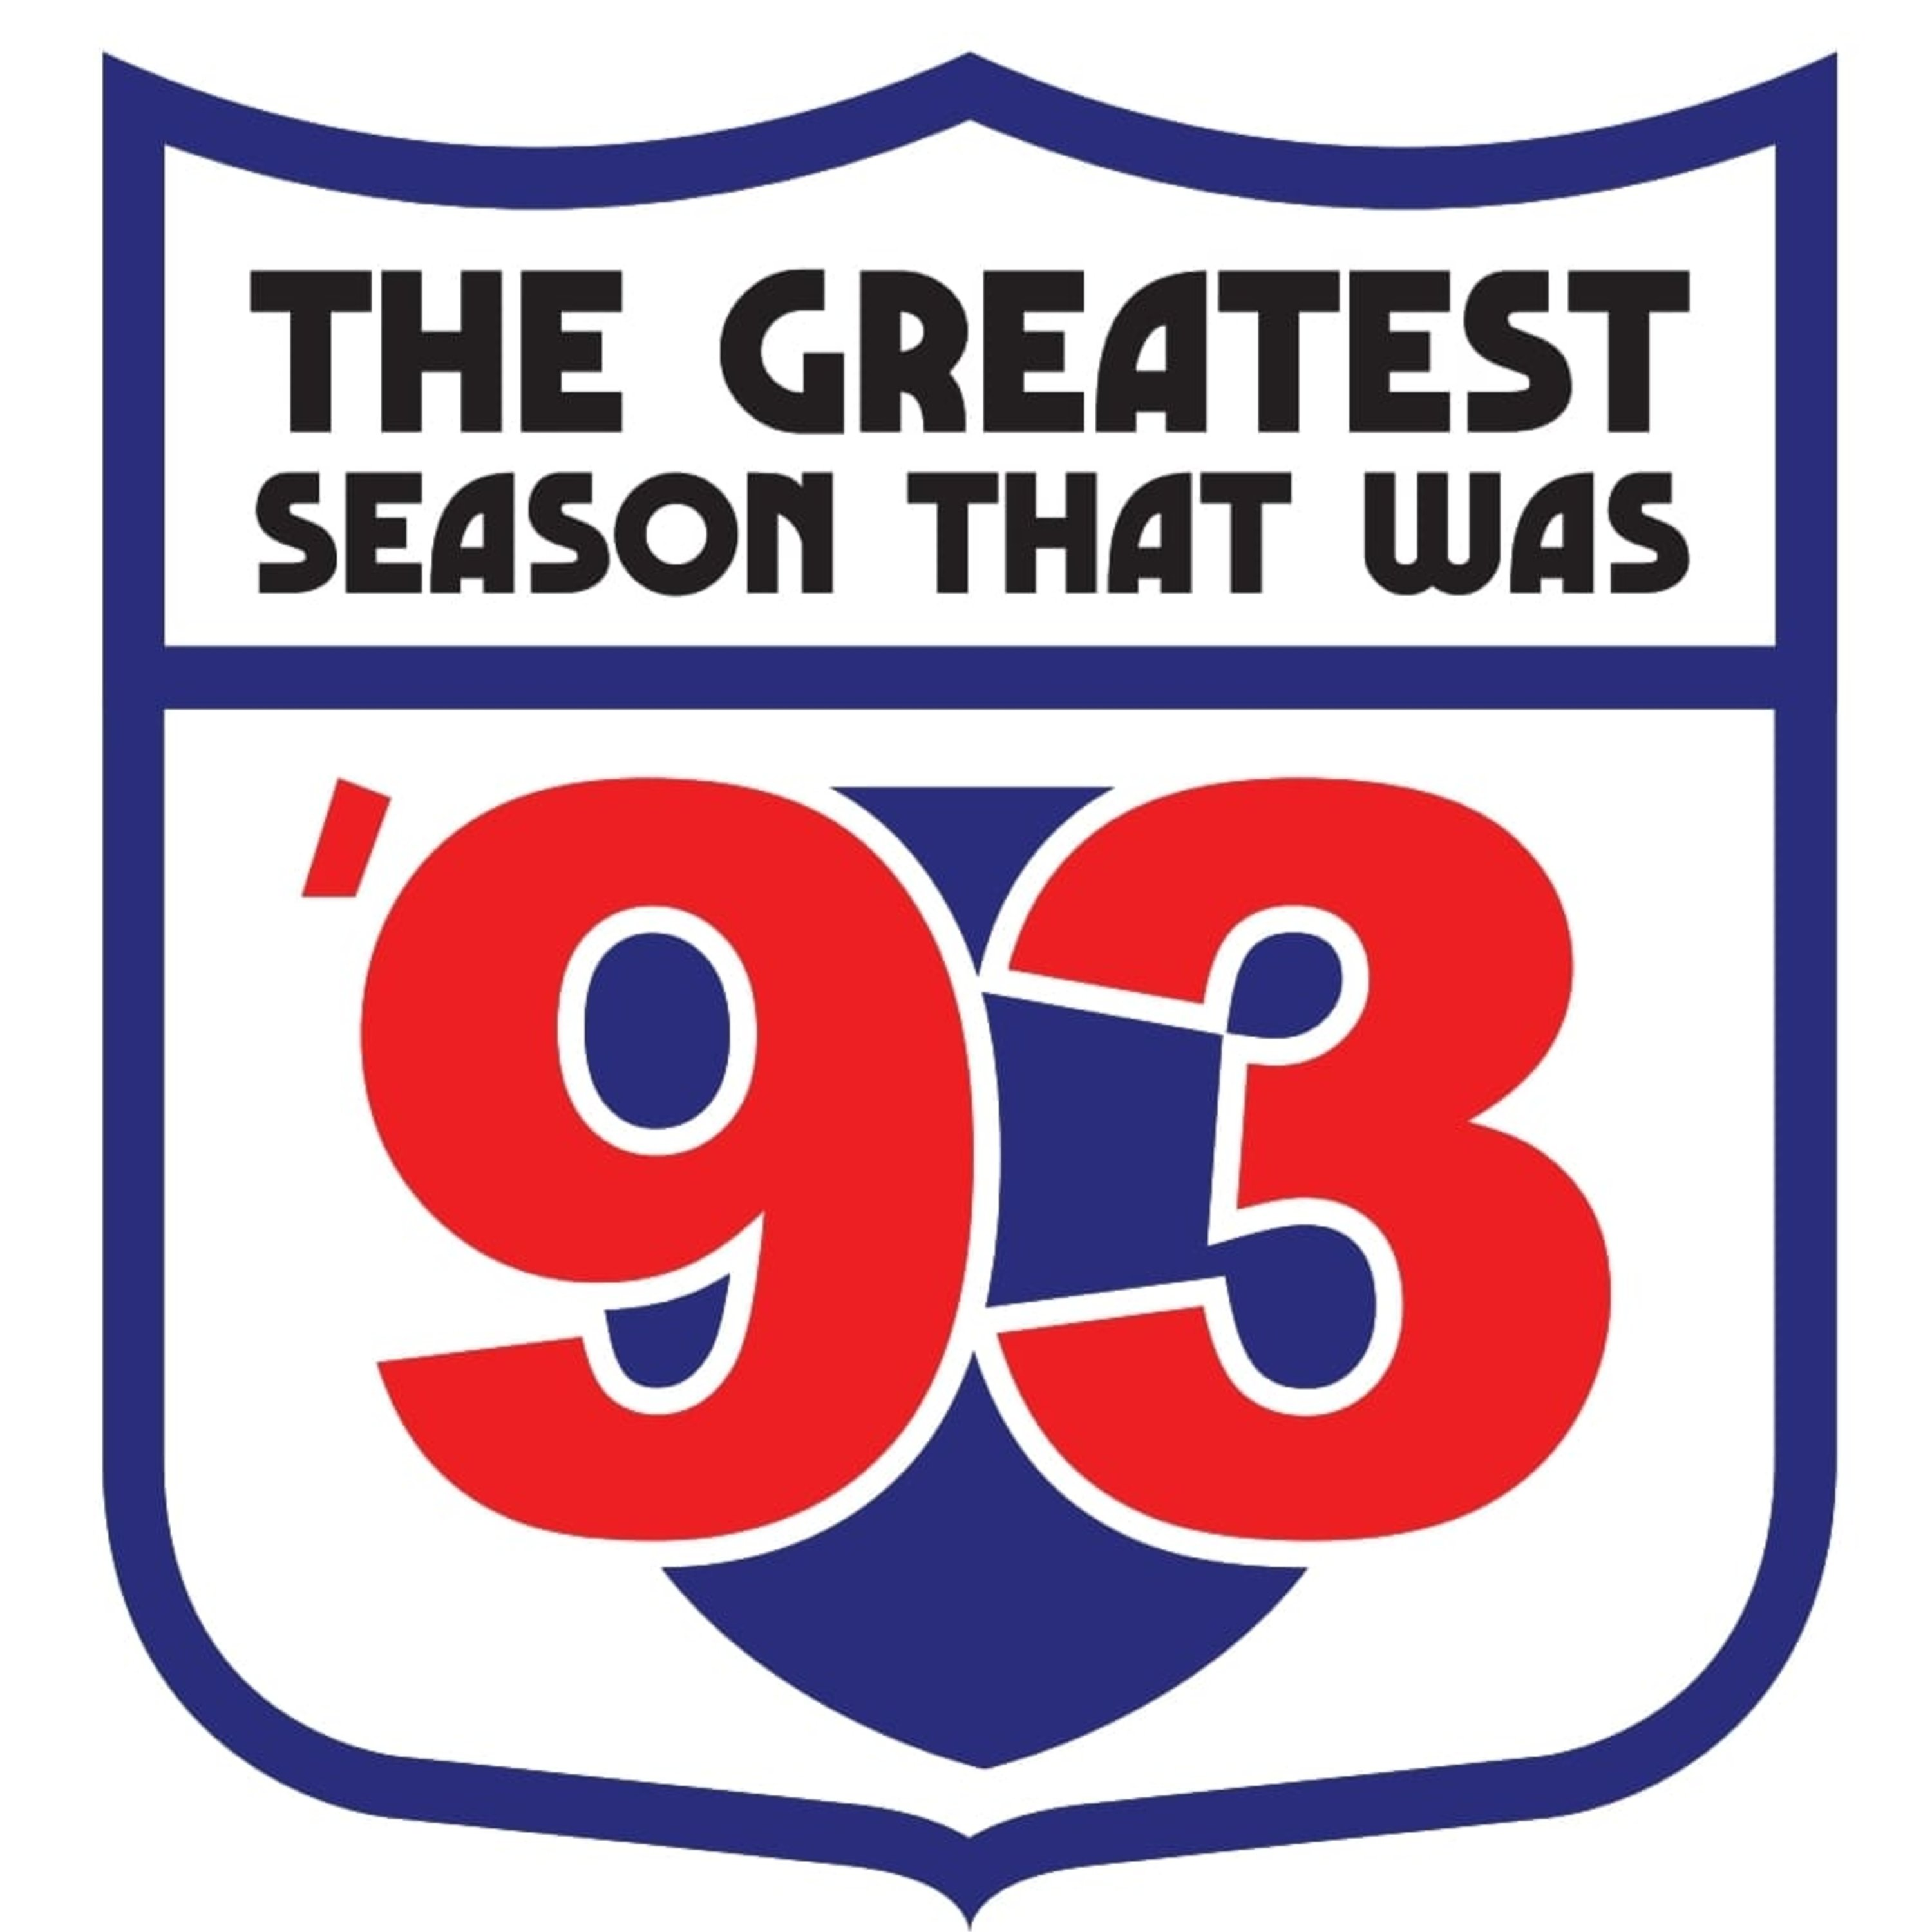 Episode 21 - The Greatest Songs from the Greatest Season That Was: 1993